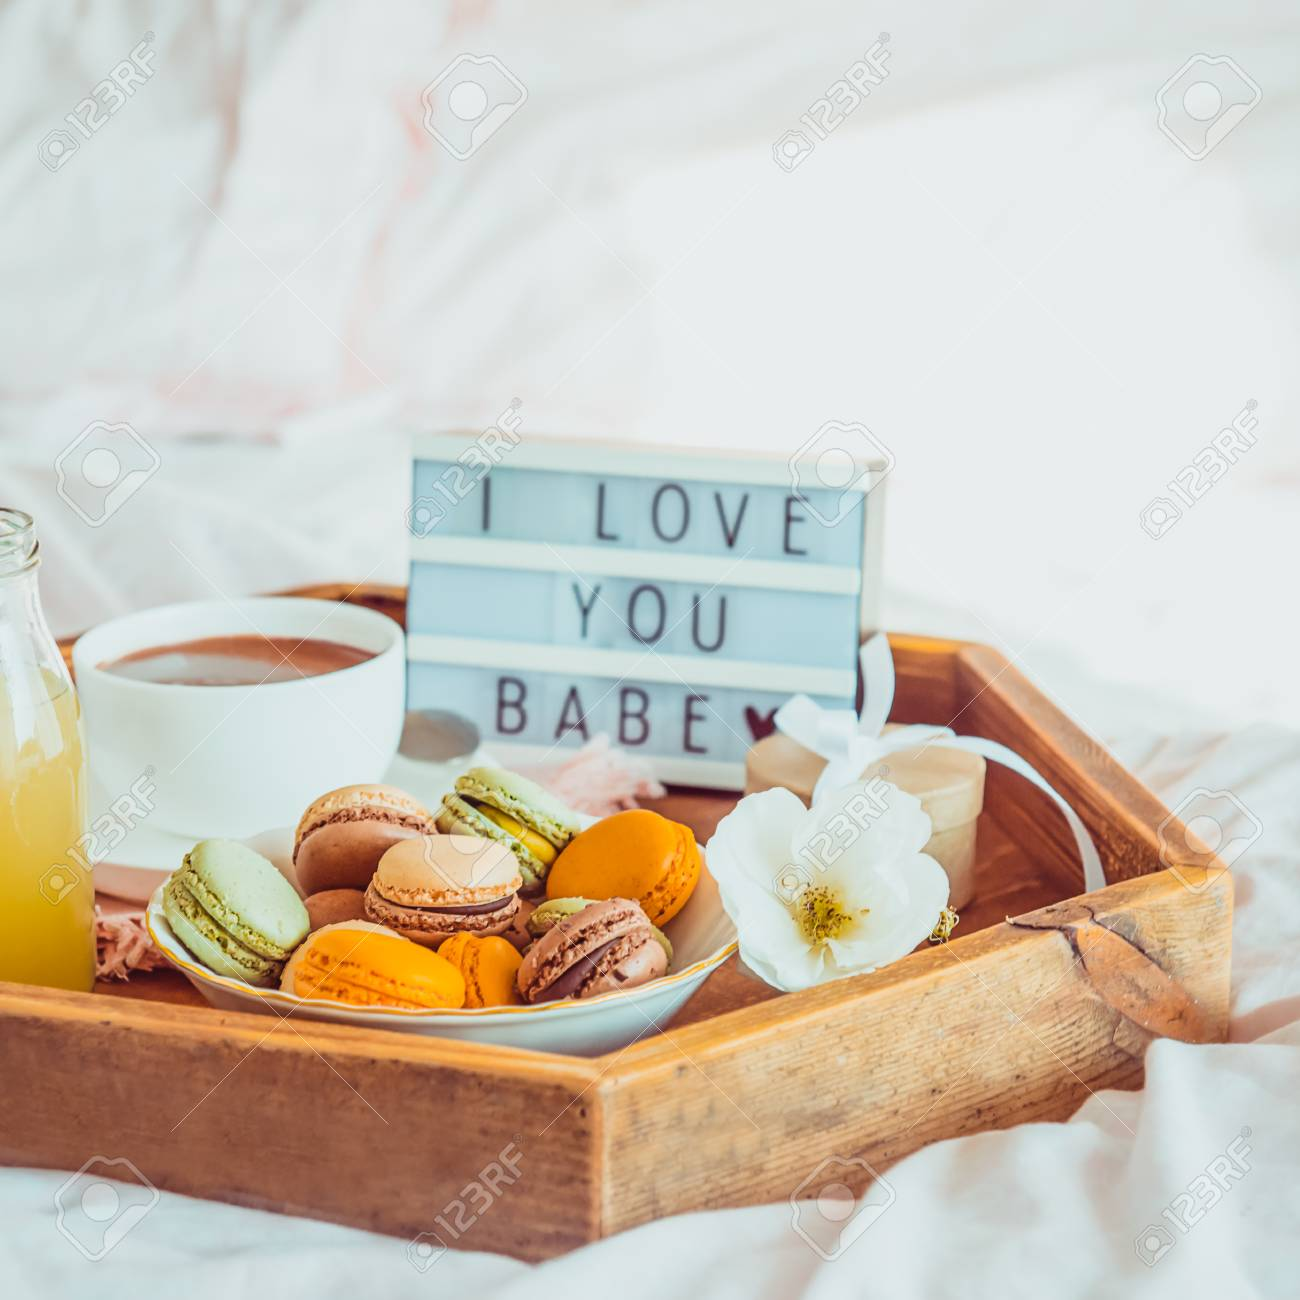 Close Up Romantic Breakfast In Bed With I Love You Baby Text Stock Photo Picture And Royalty Free Image Image 113136913